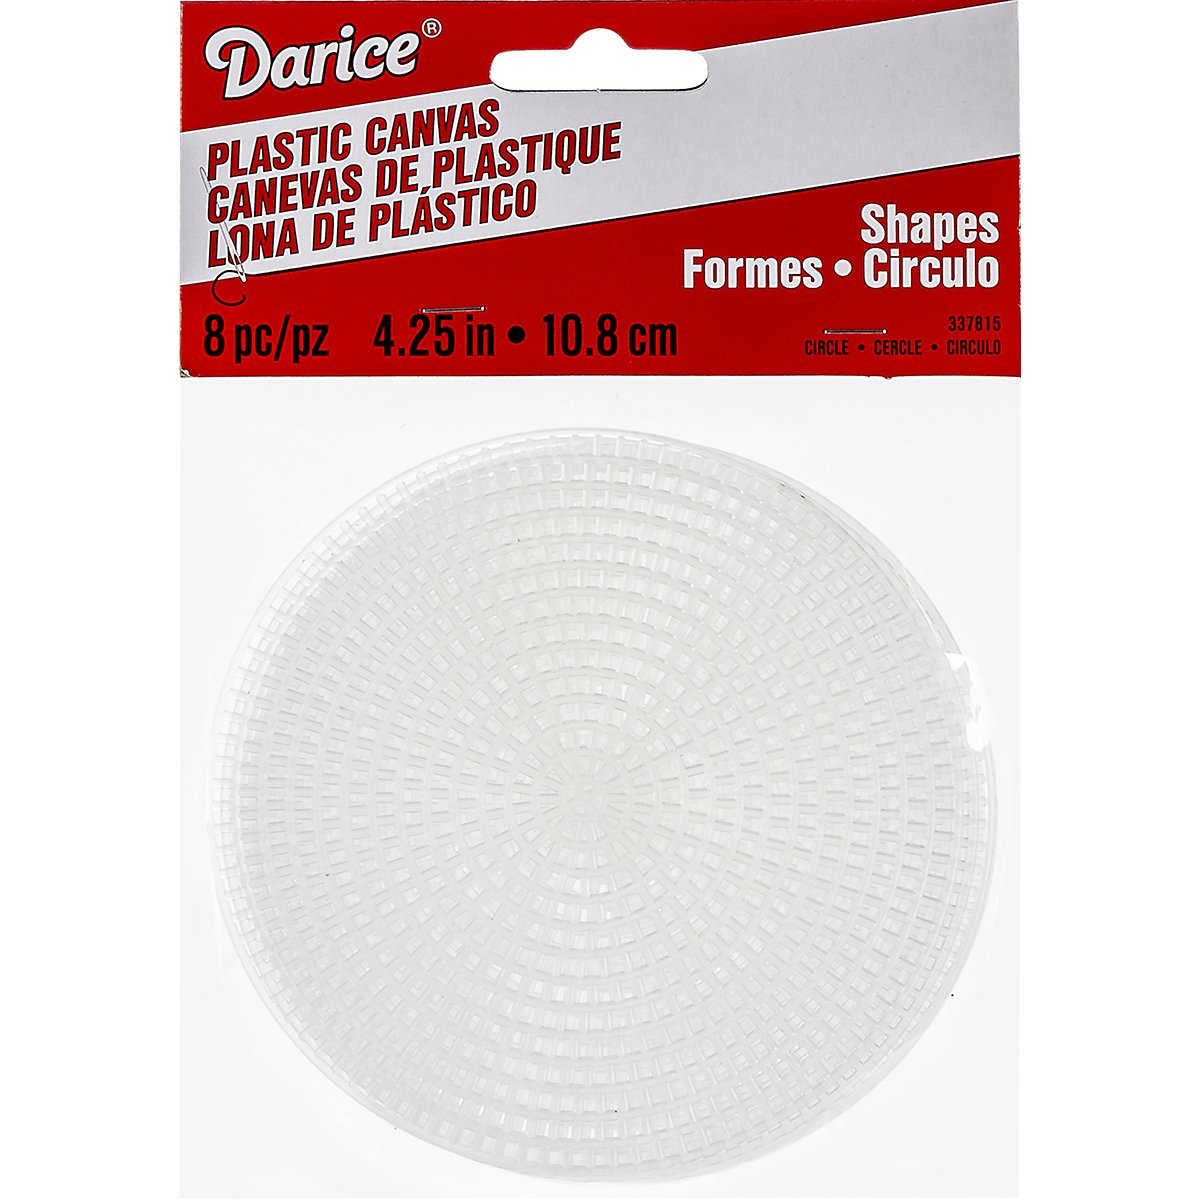 Plastic Canvas Shape - Circle - 4-1/4 inches - 8 pieces Darice 337815